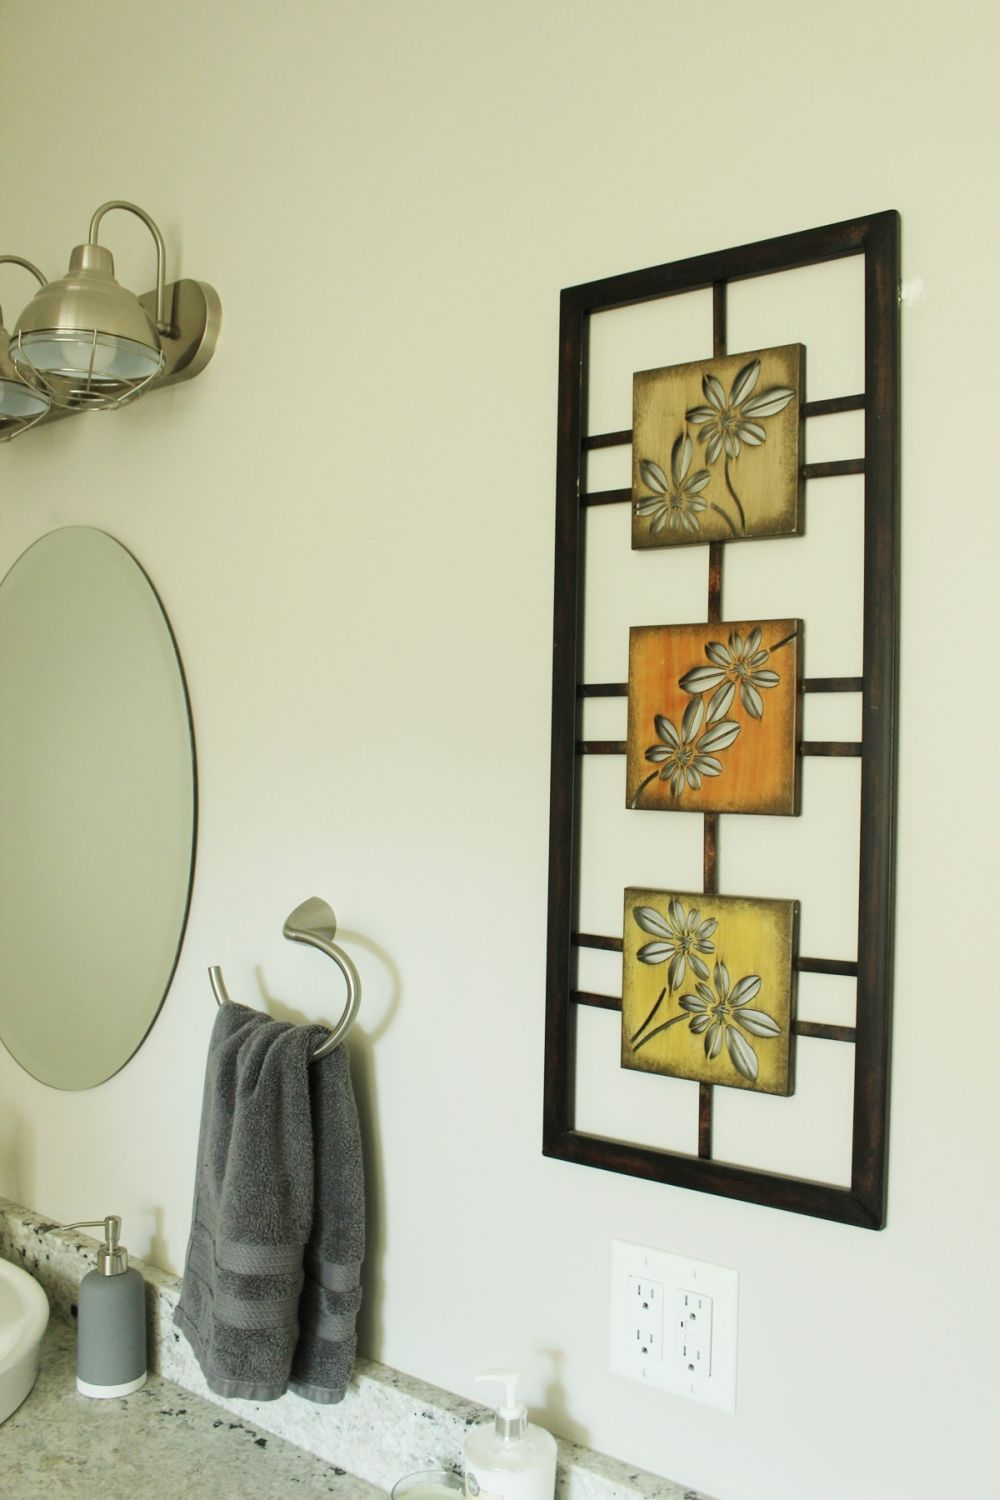 Master bathroom with metal wall art